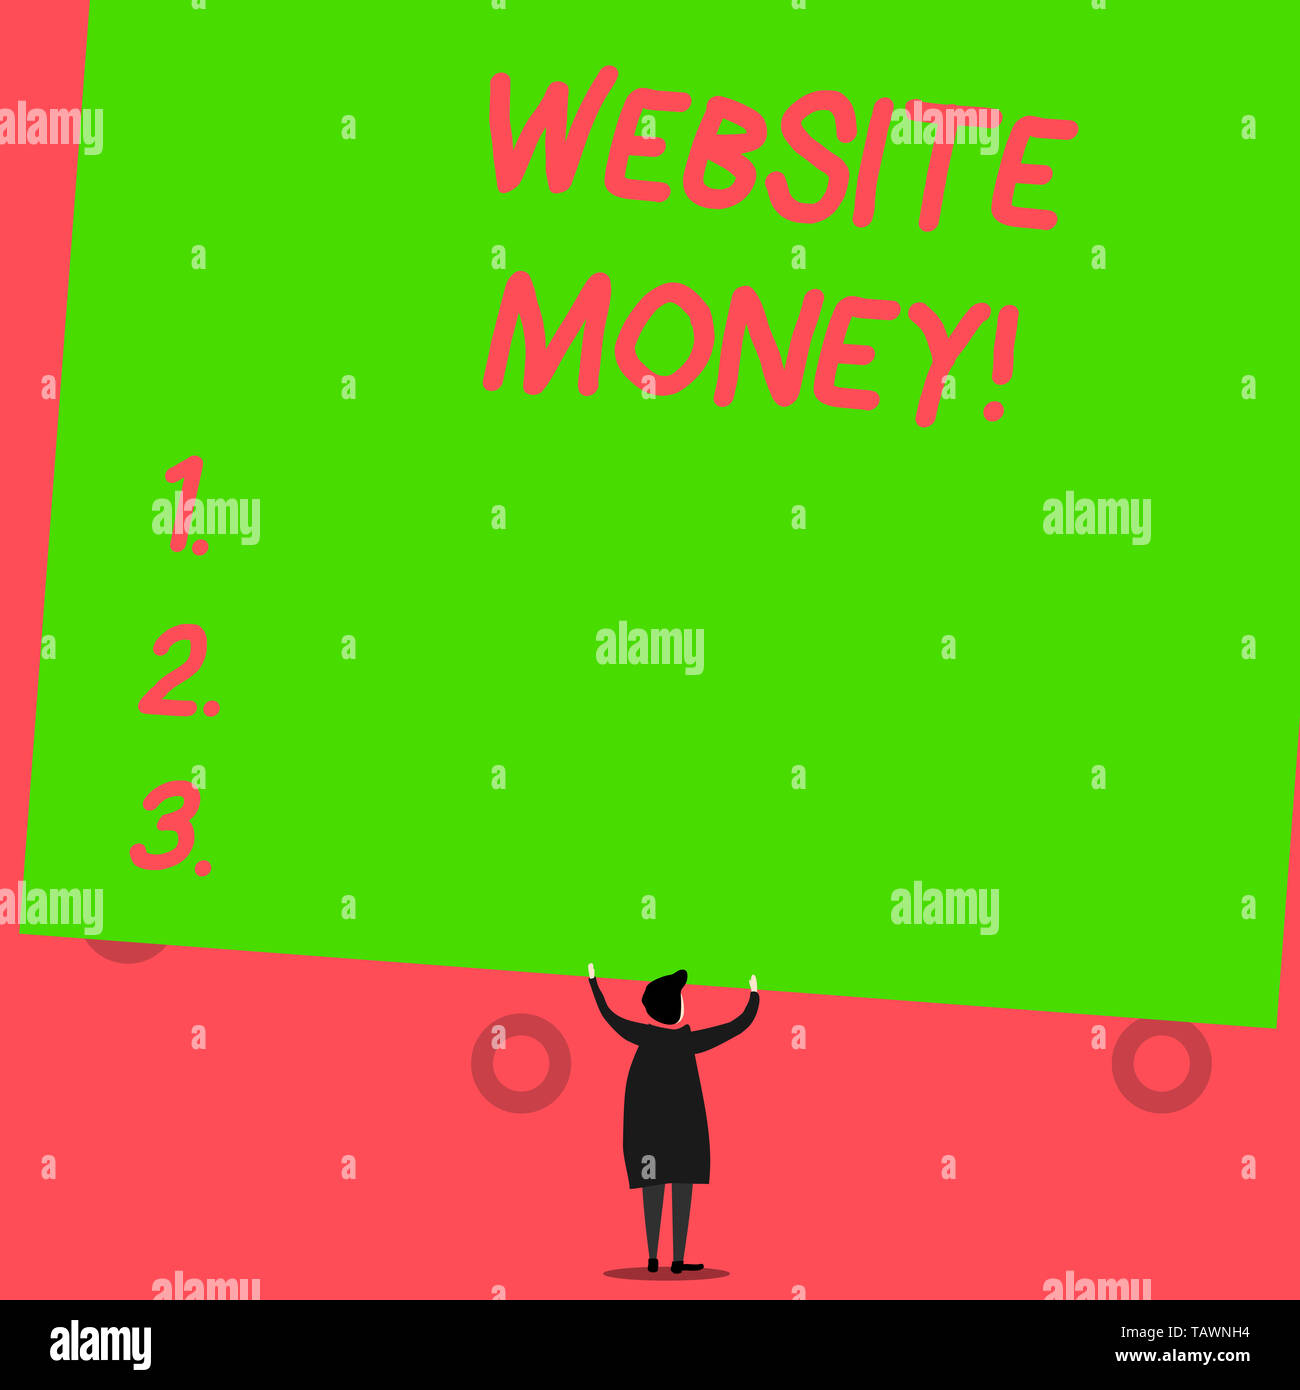 Writing note showing Website Money. Business concept for Refers to the website we want to promote Where money is earned - Stock Image